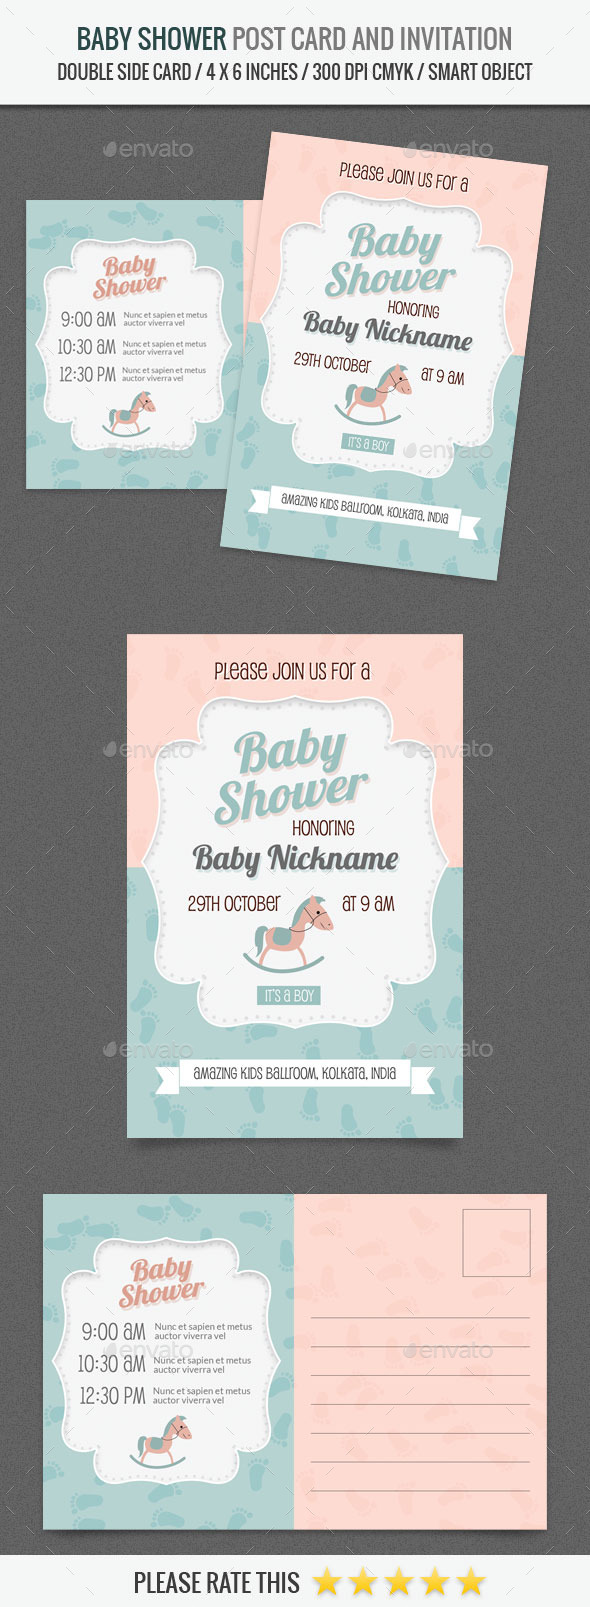 Baby Shower Post Card and Invitation Card Template - Invitations Cards & Invites